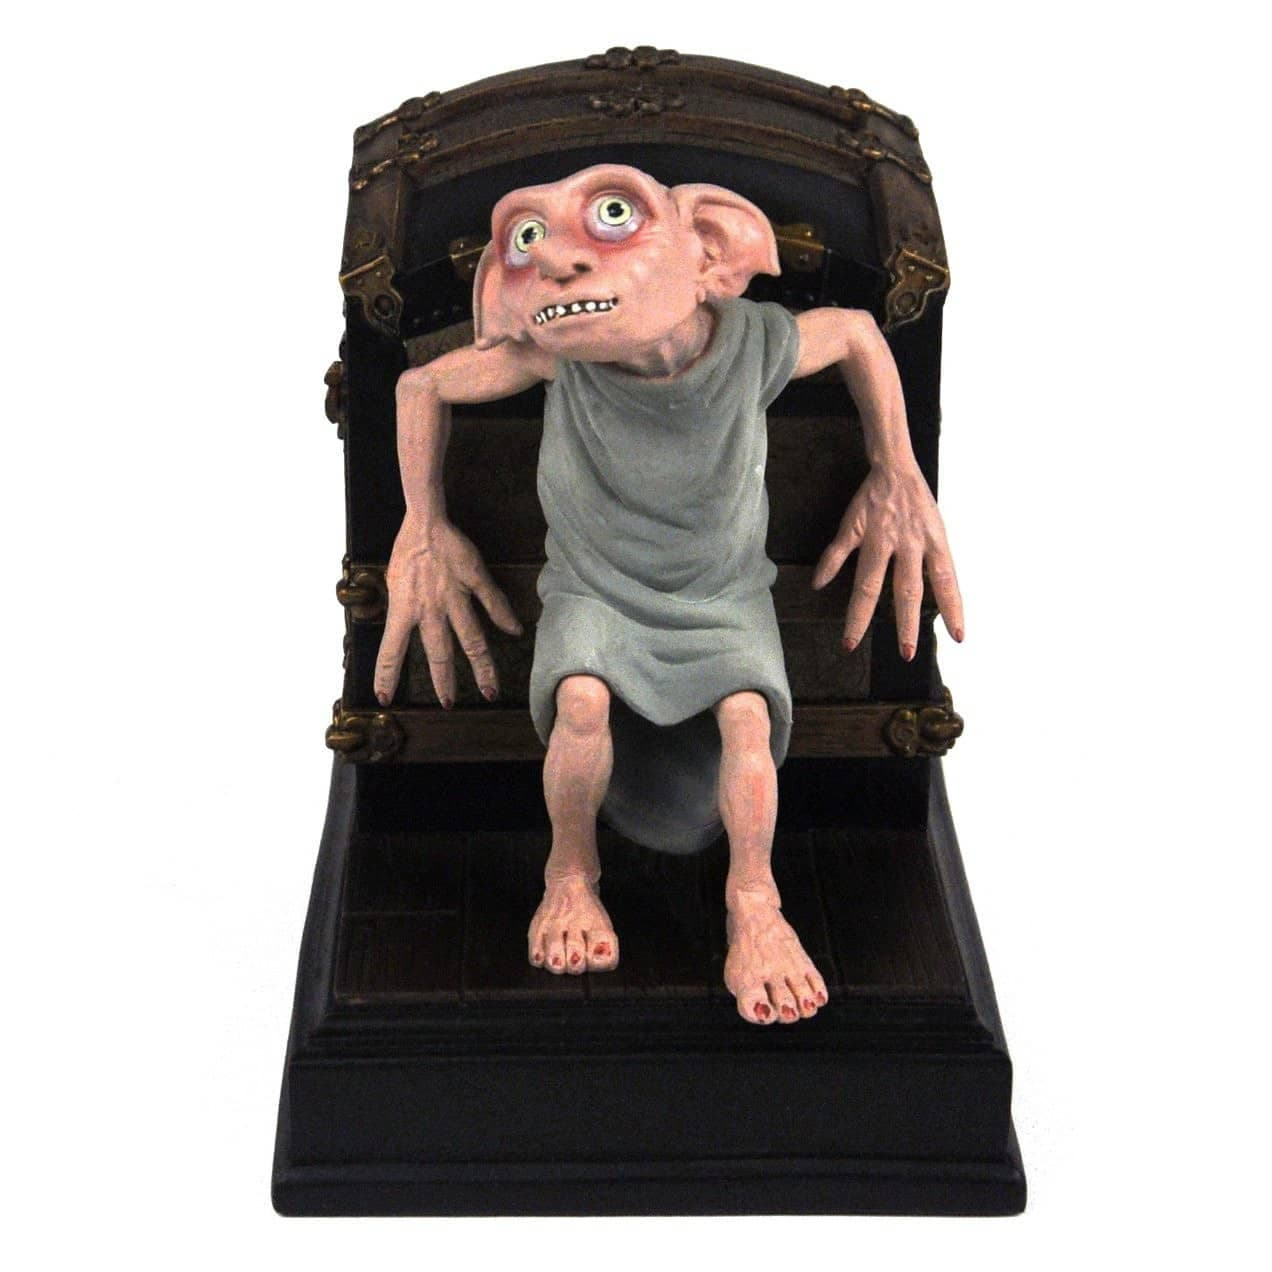 Harry Potter Dobby The House Elf Bookend